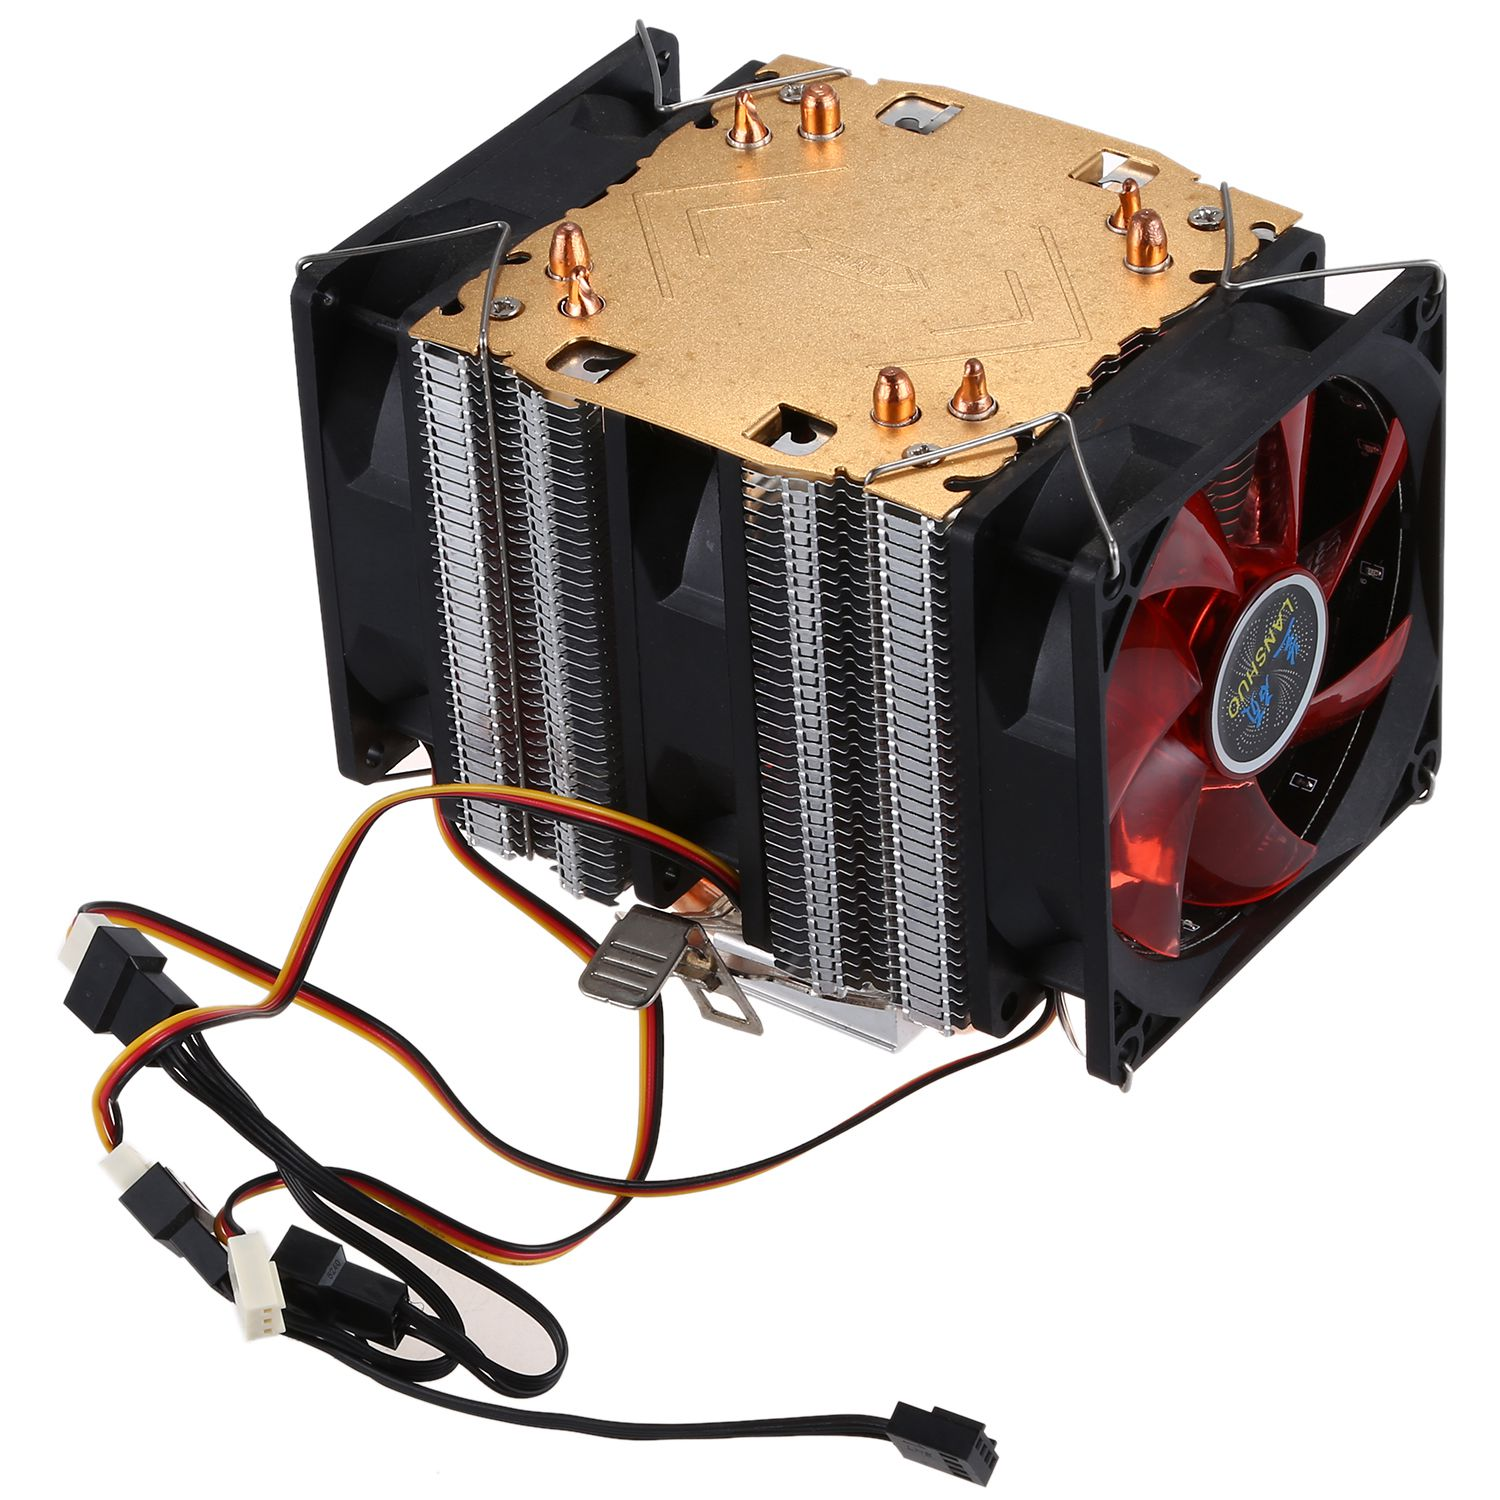 Lanshuo Pure Copper 2 Heat Pipe for 1366 1155 775 Intel//AMD Multi-Platform Mini CPU Radiator 4 Wire Without Light One Fans